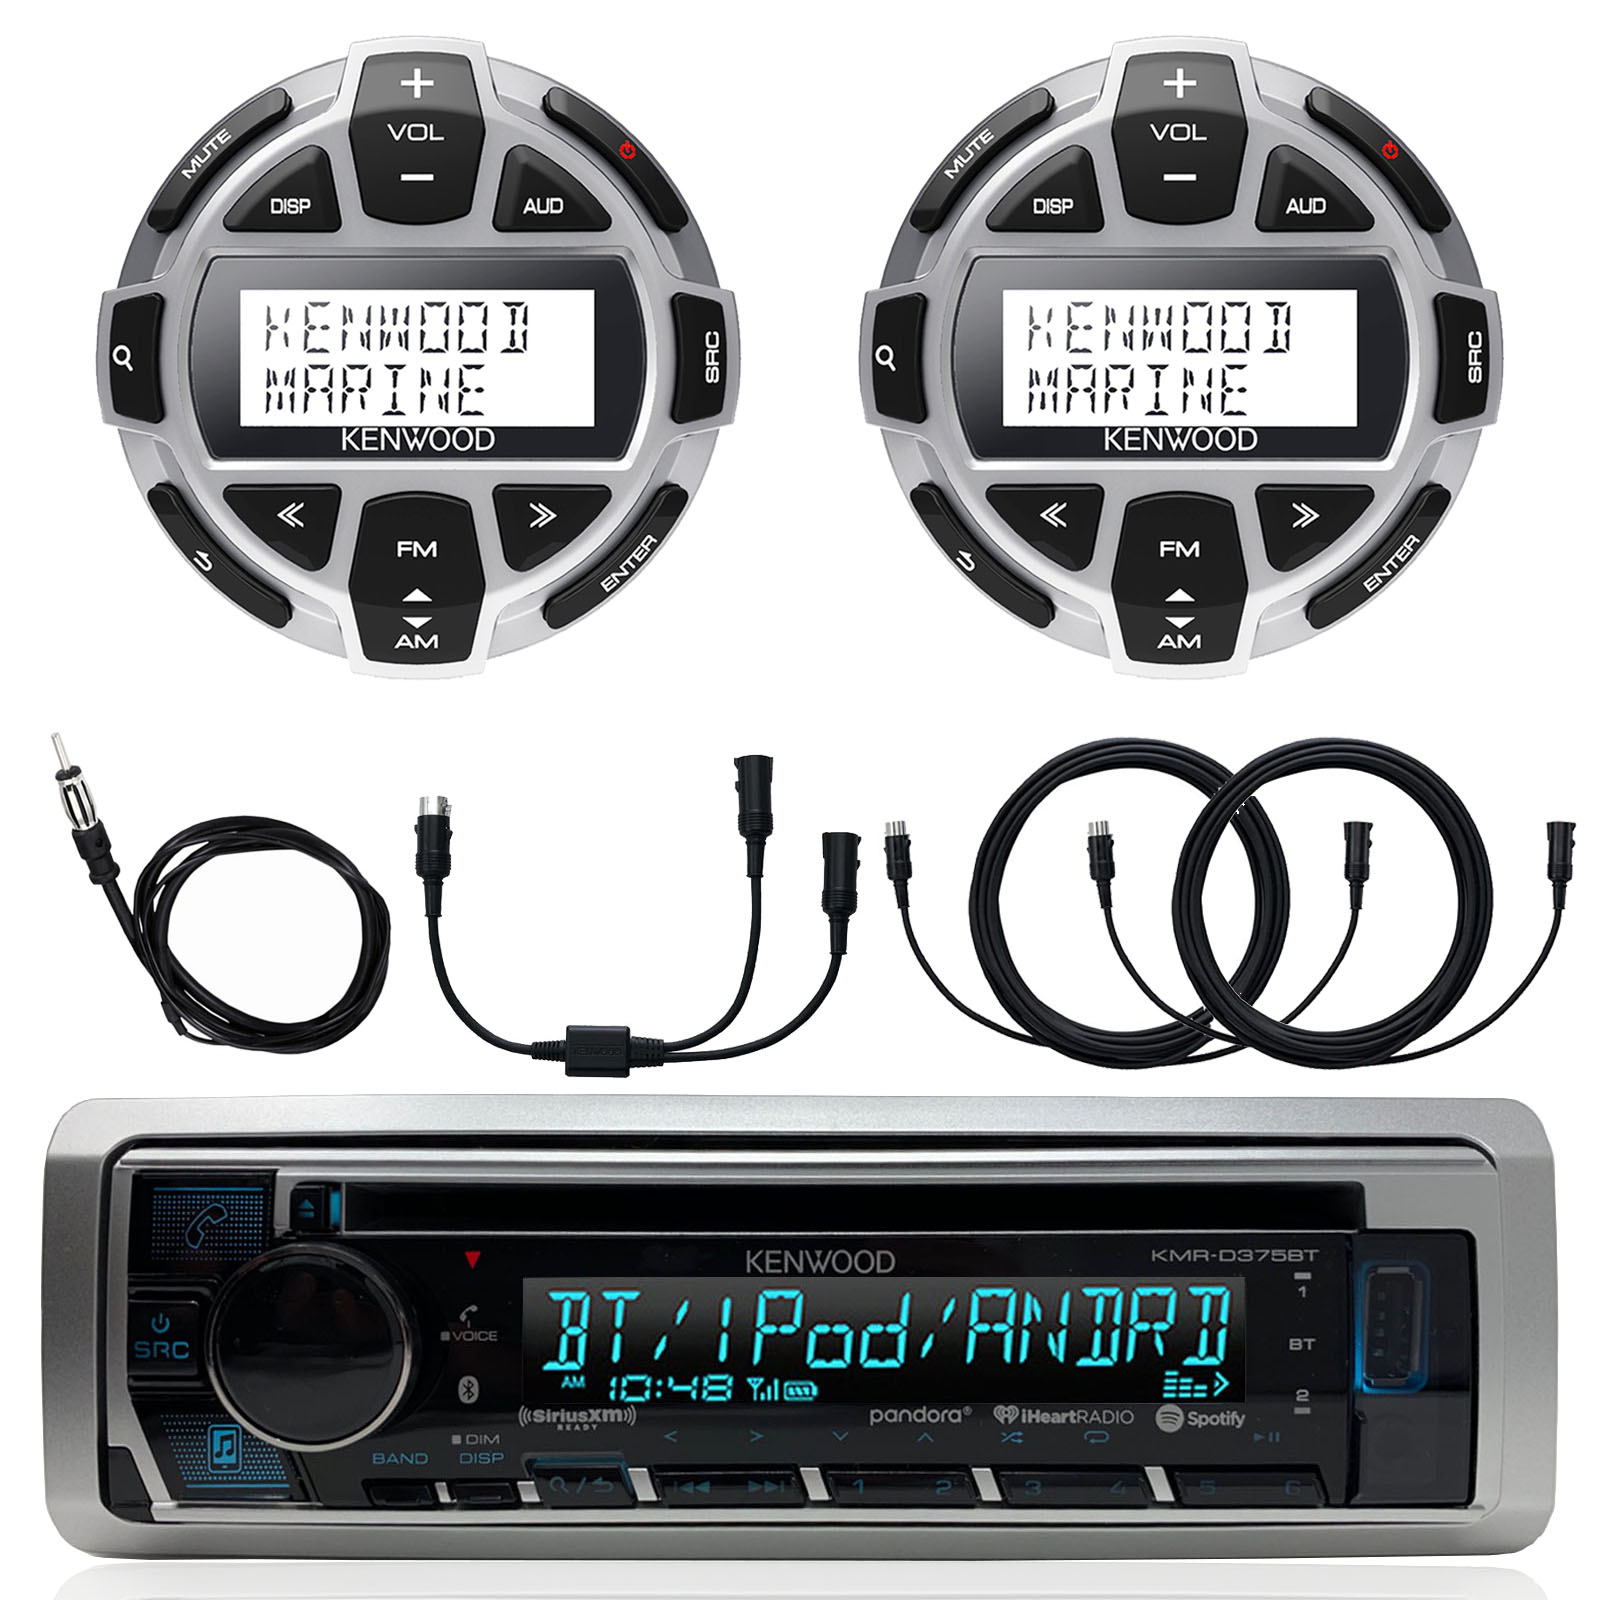 """Kenwood Marine Motorsports Boat Yacht In-Dash Single DIN CD Bluetooth UBS AUX Receiver, 2x Kenwood Digital LCD Display Wired Remote, 40"""" AM/FM Antenna, Y-Cable Adapter, 2x 7-Meter 22 Ft Extension"""